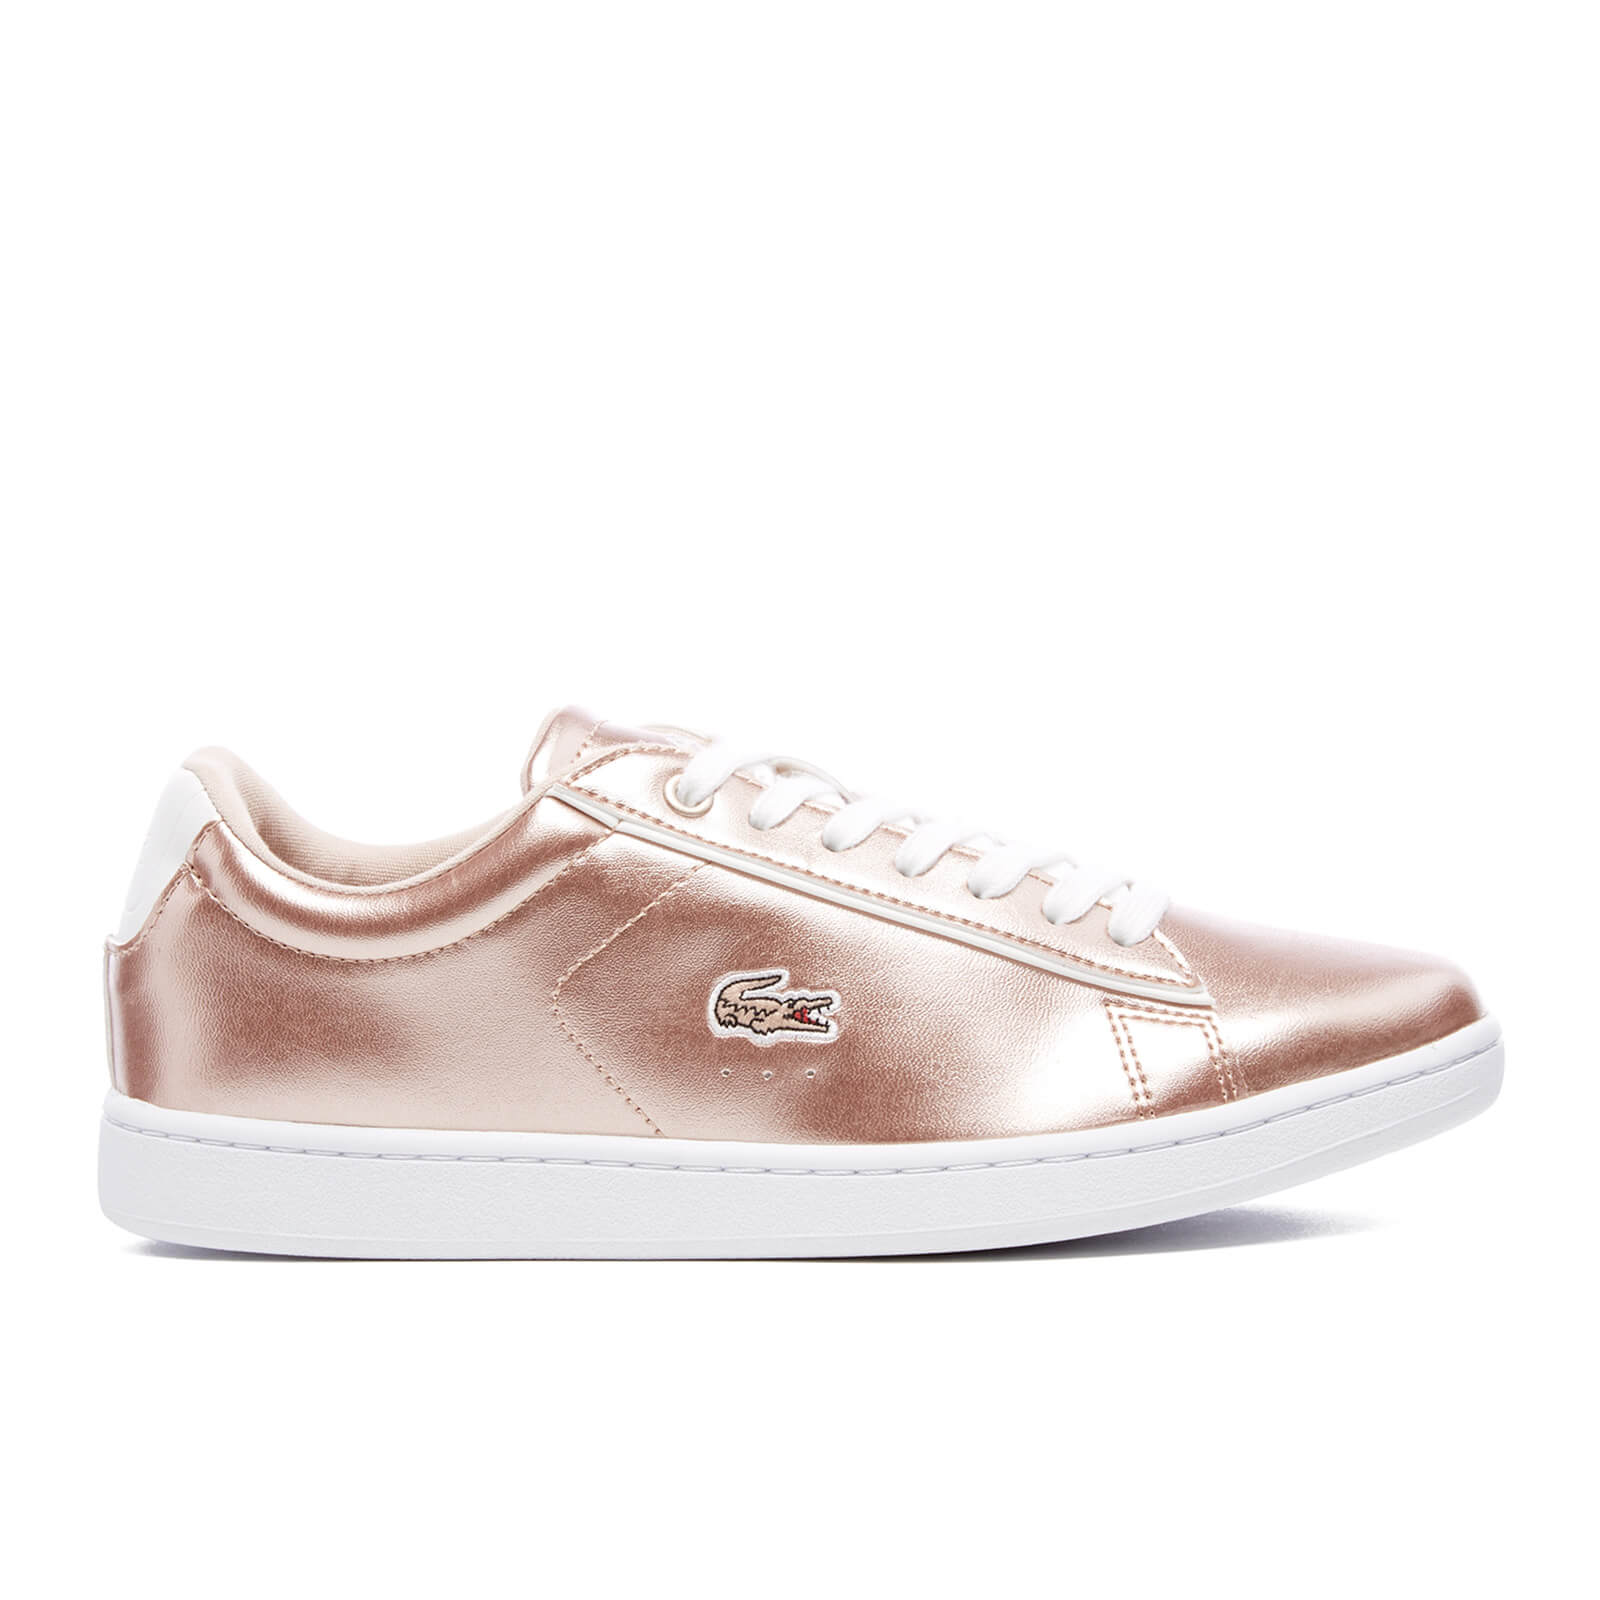 e0d1261803b2 Lacoste Women s Carnaby Evo 316 2 Trainers - Light Pink - Free UK ...